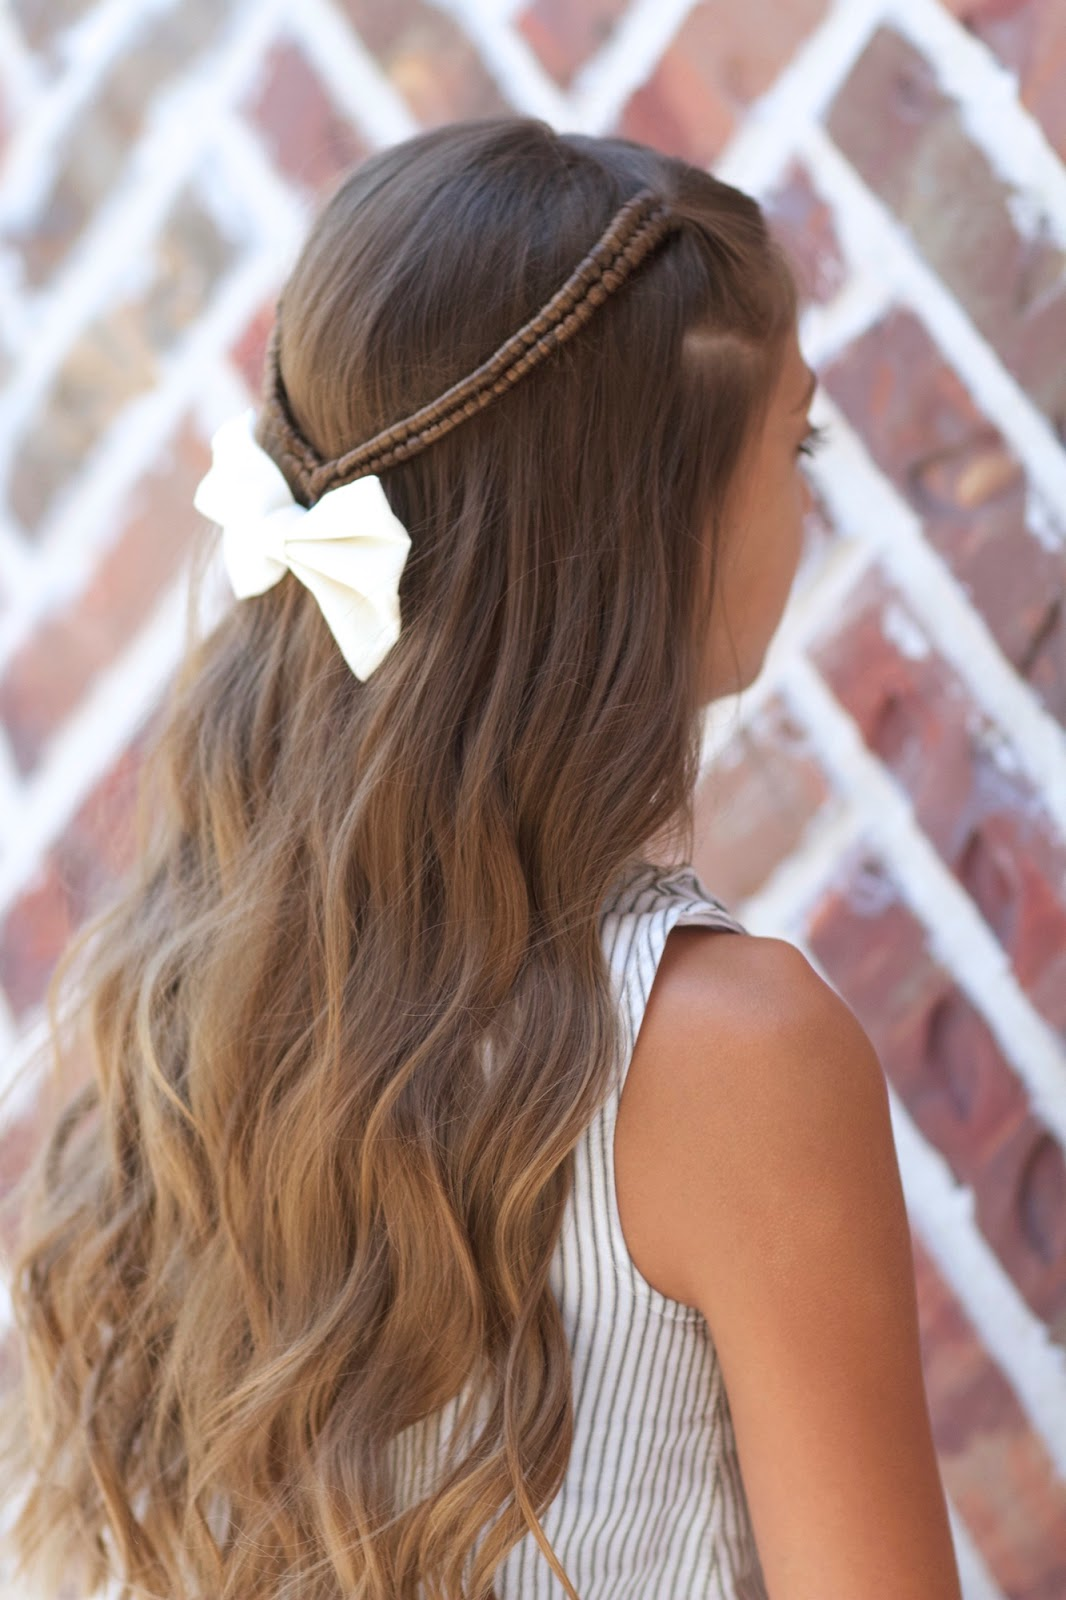 56 Cute Hairstyles For The Girly Girl In You Hairstylo